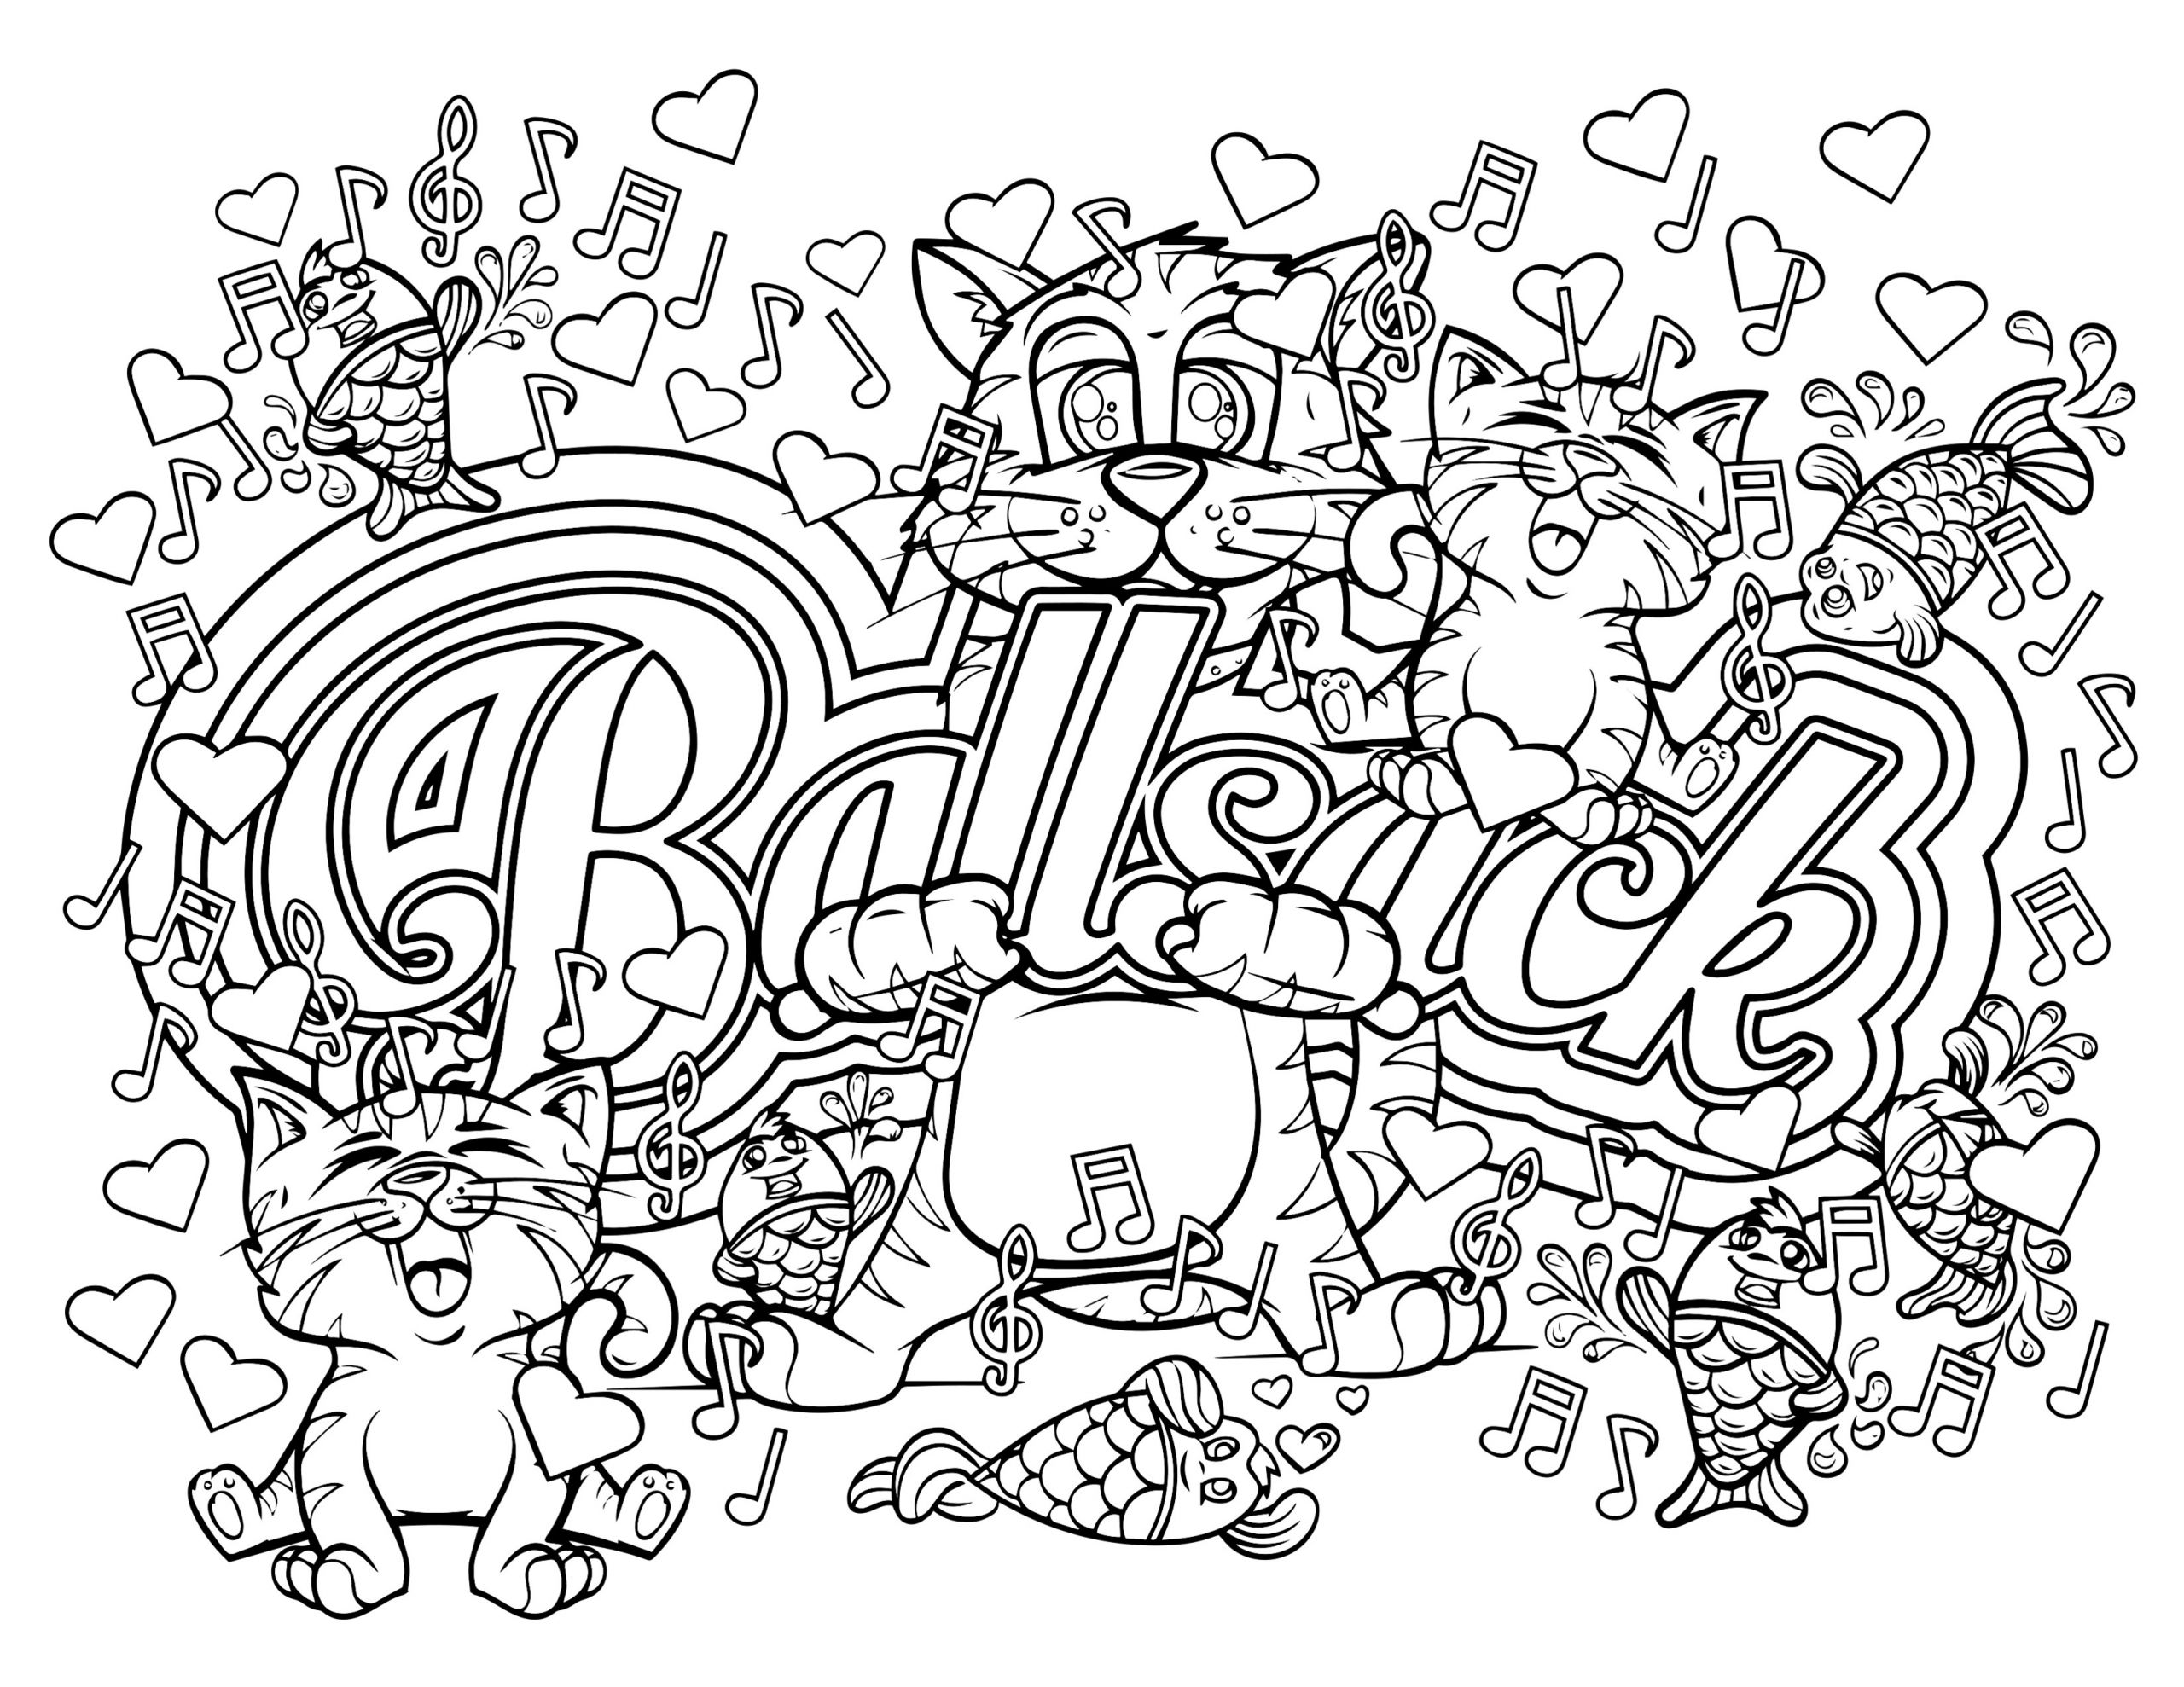 Adult Swear Coloring Pages  Swear Word Coloring Pages Printable at GetColorings